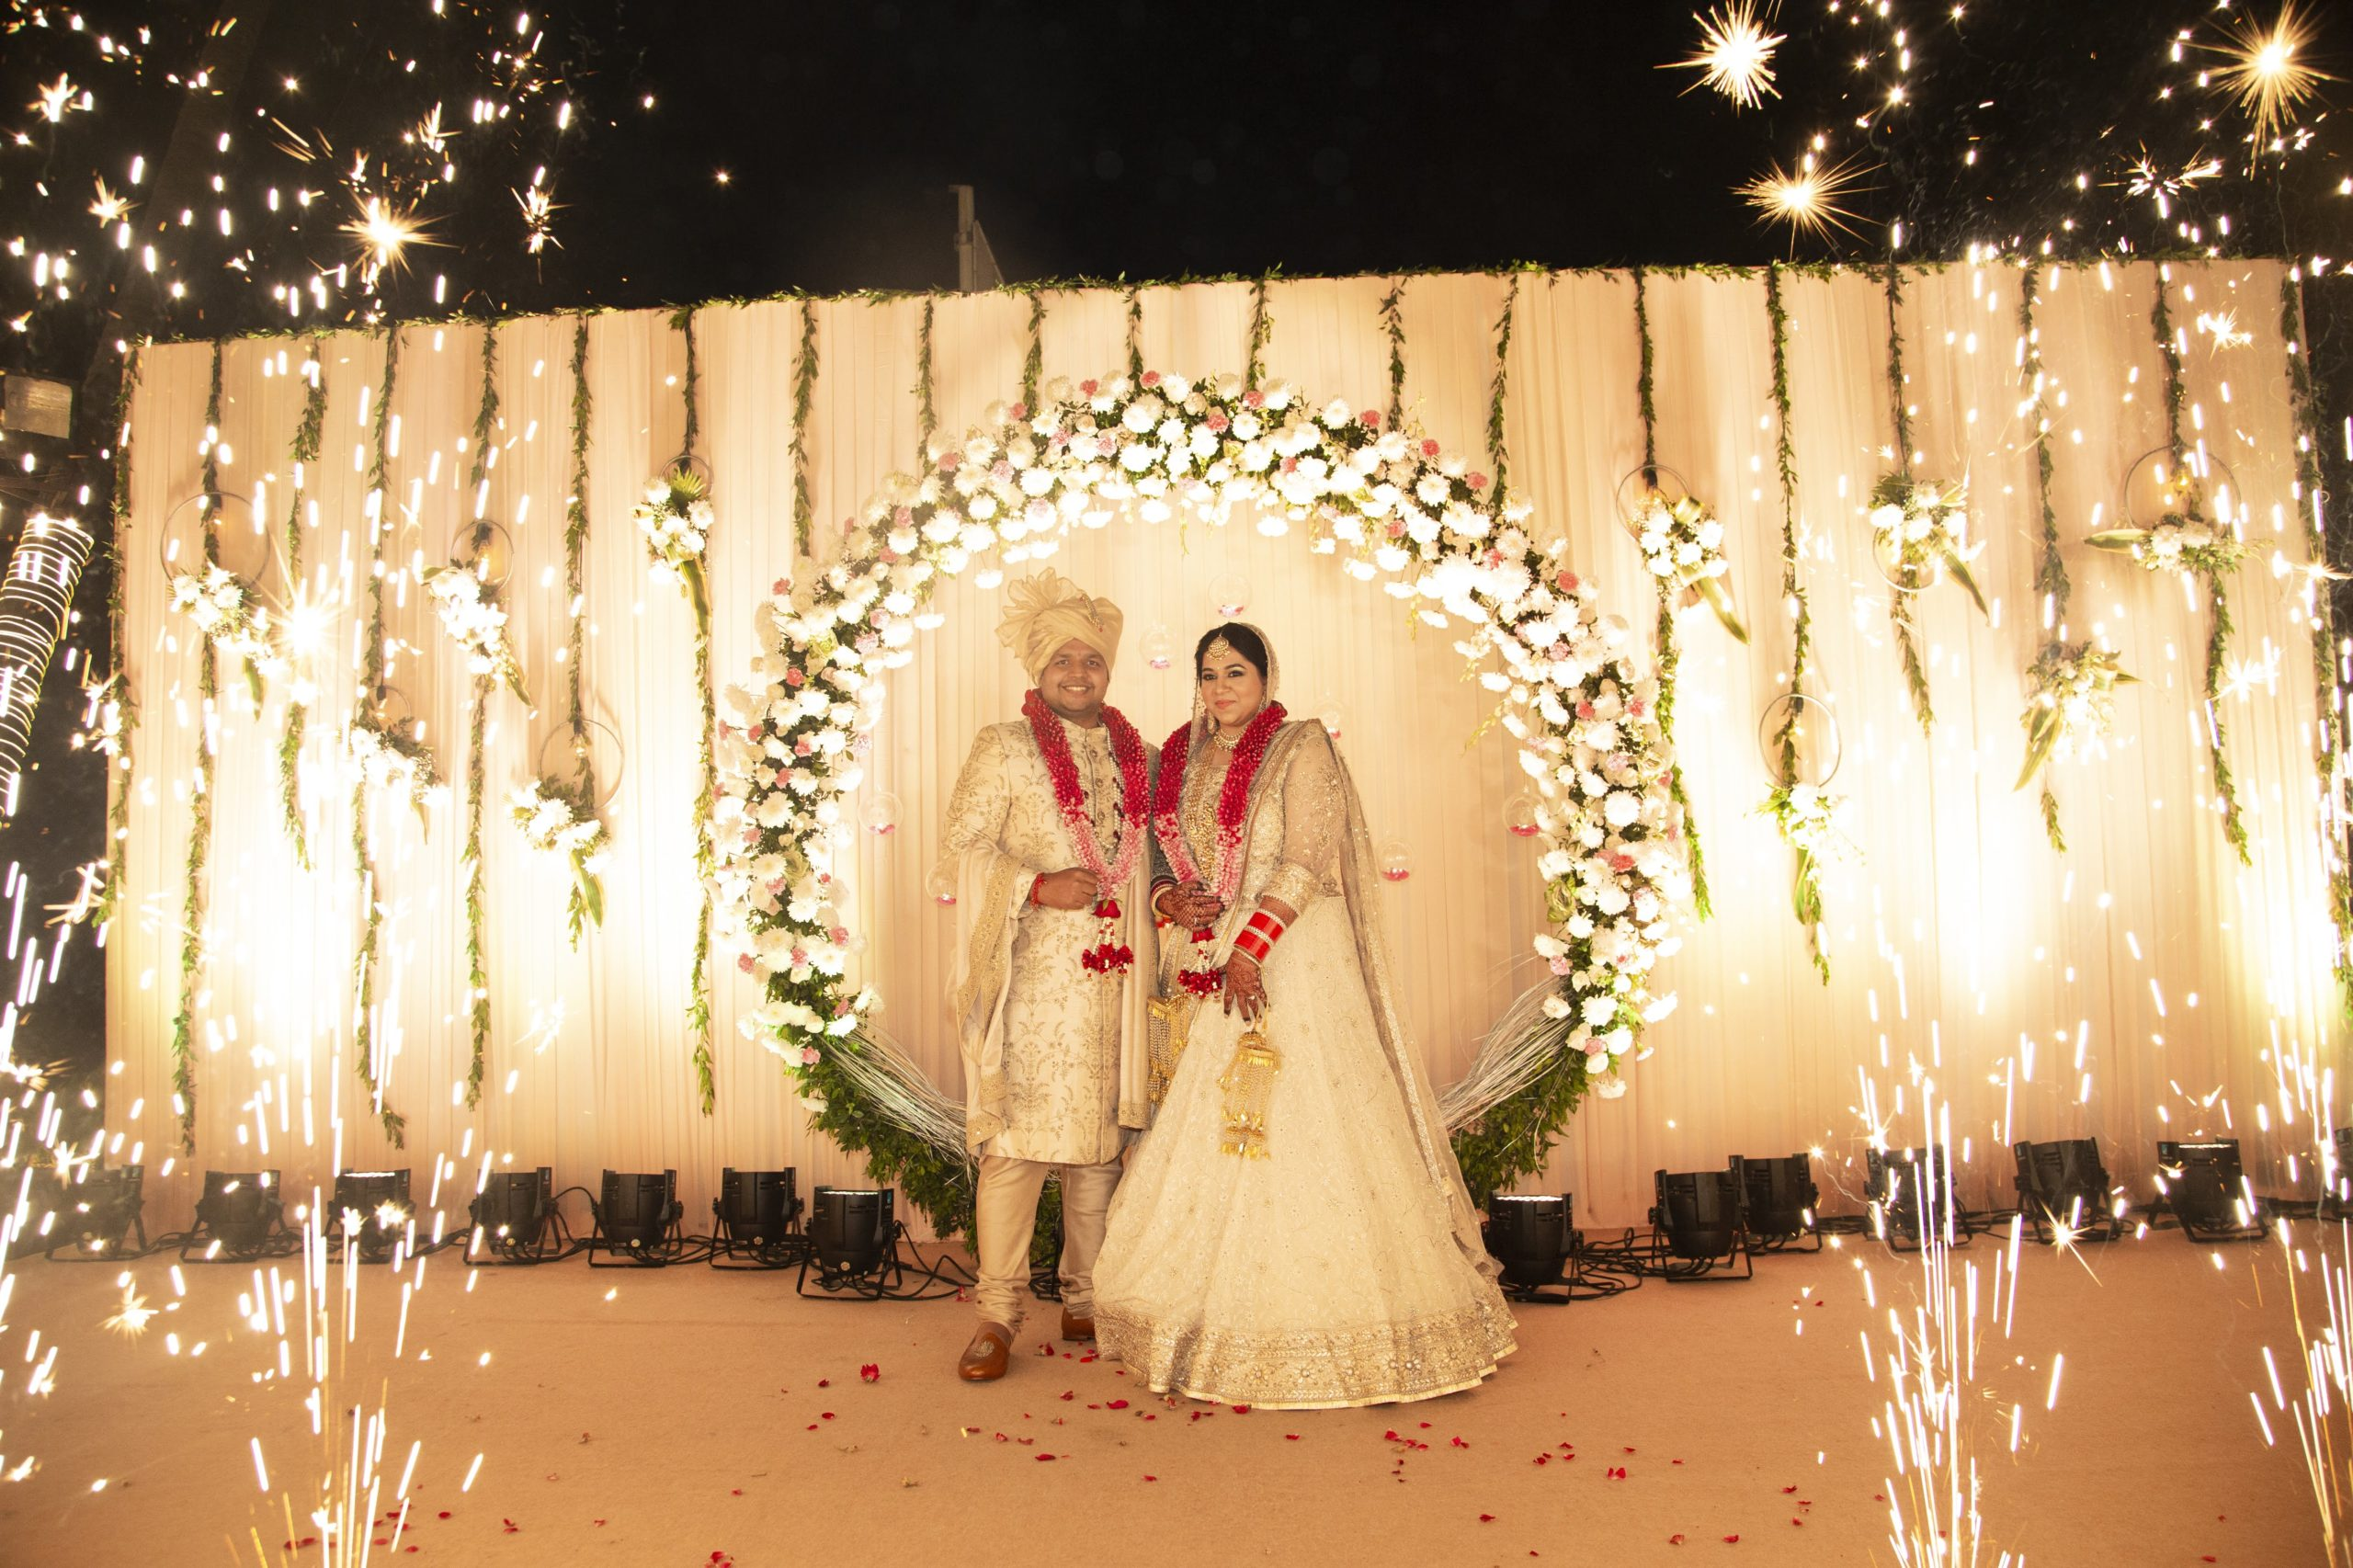 bride & groom in ivory colored outfits